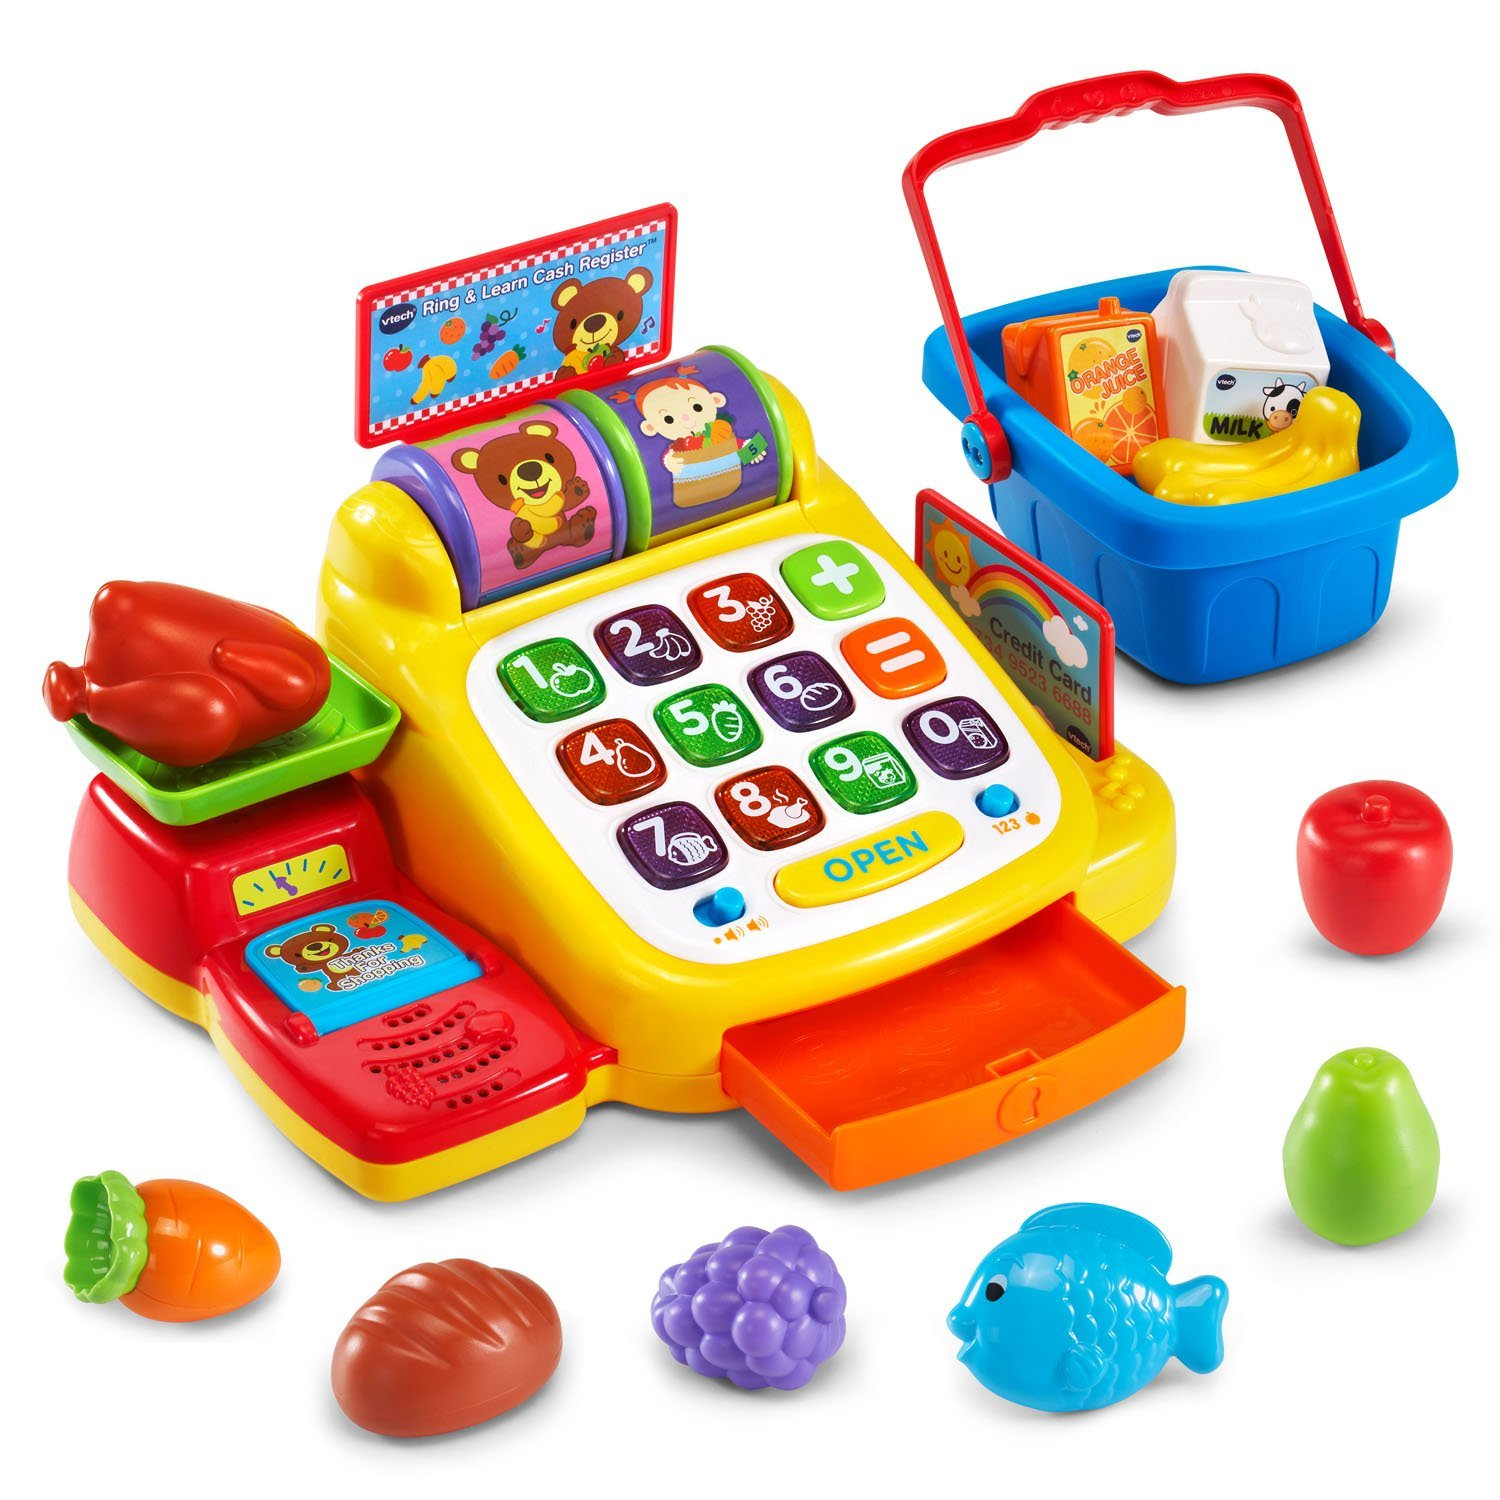 Amazon VTech Ring and Learn Cash Register Toys & Games